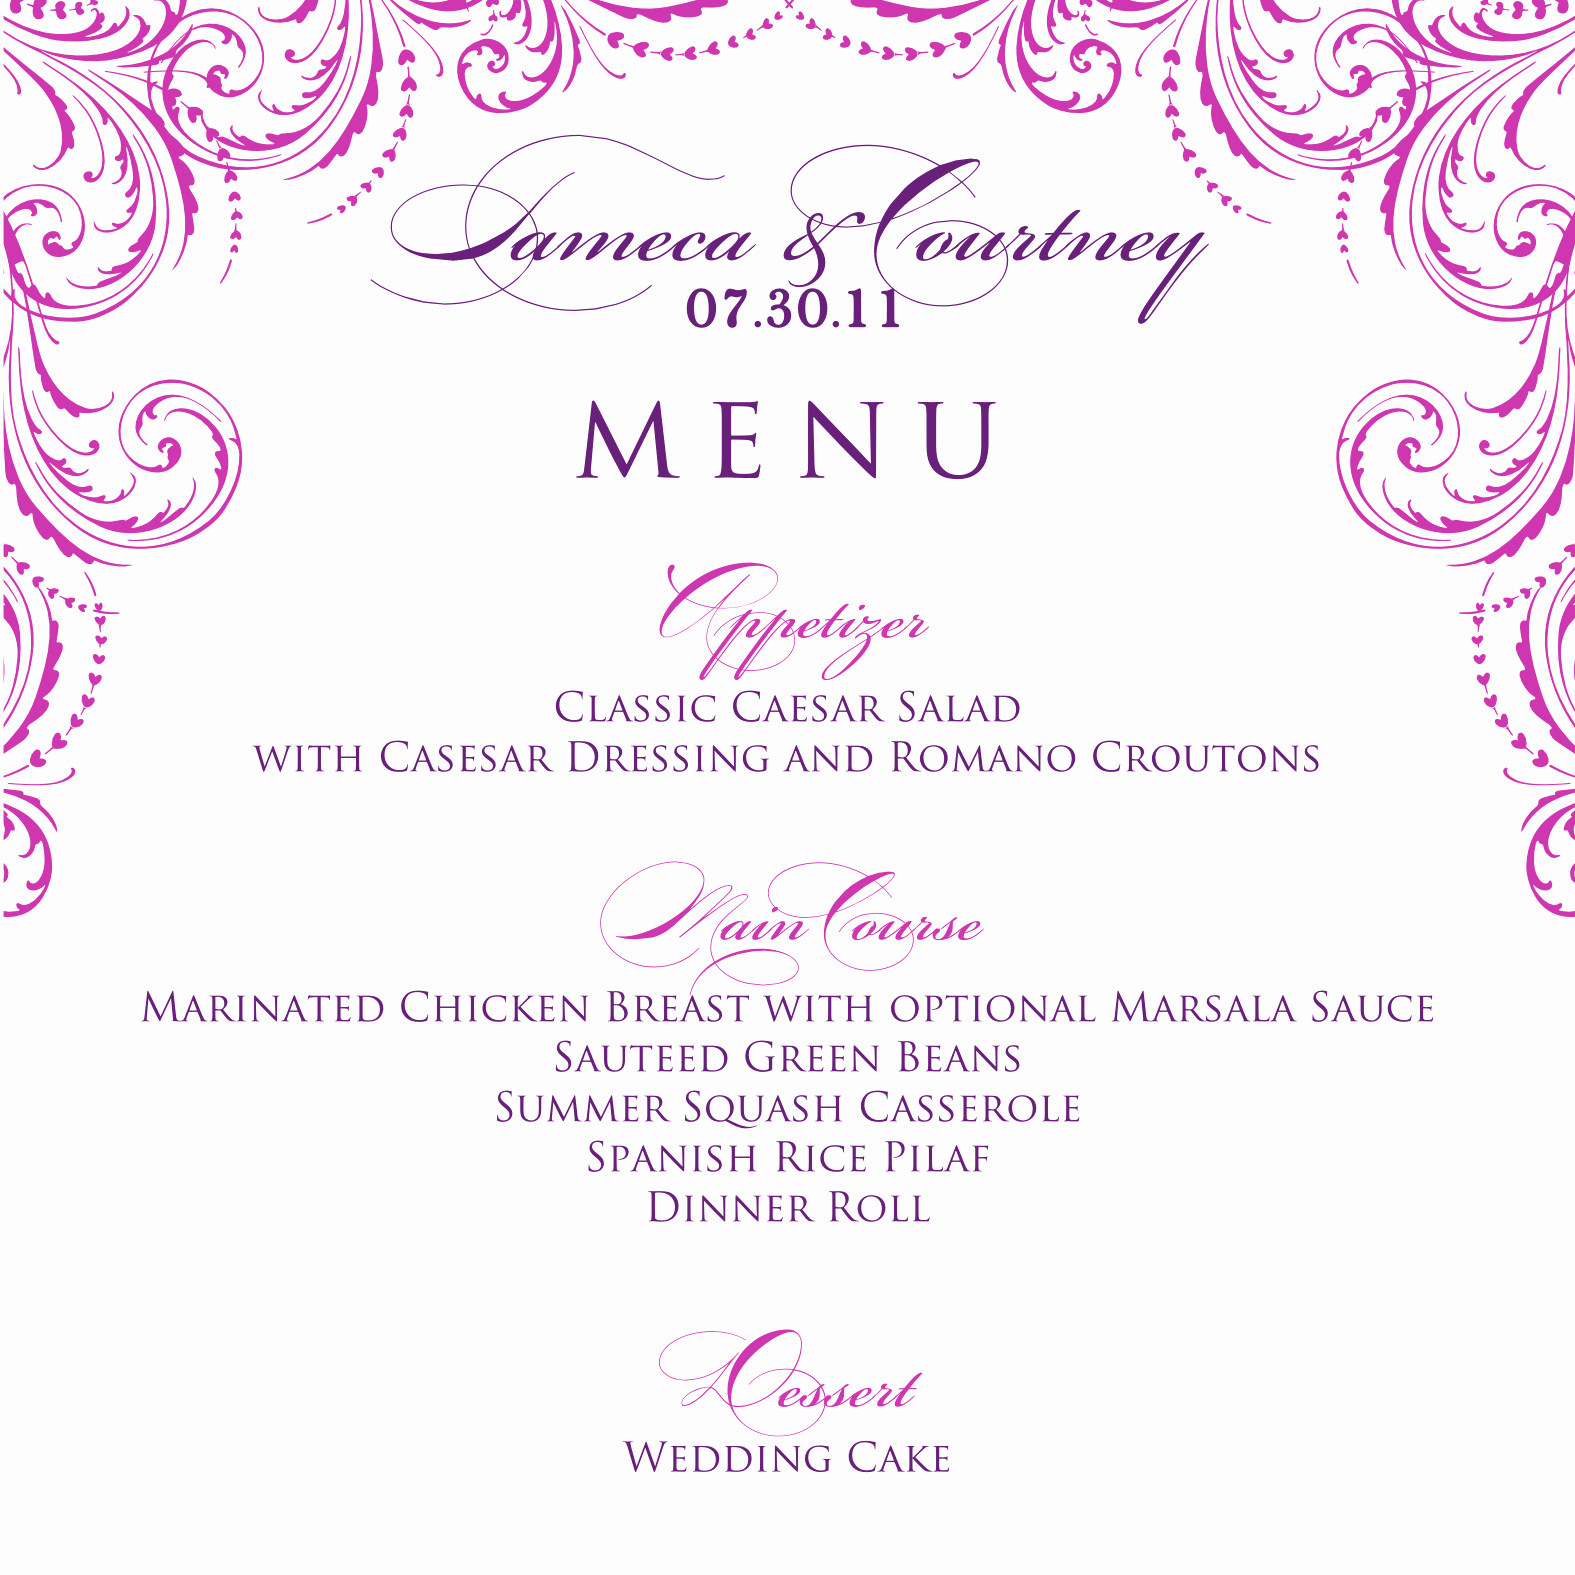 Free Wedding Menu Templates Awesome Signatures by Sarah Wedding Menu and Program for Tameca